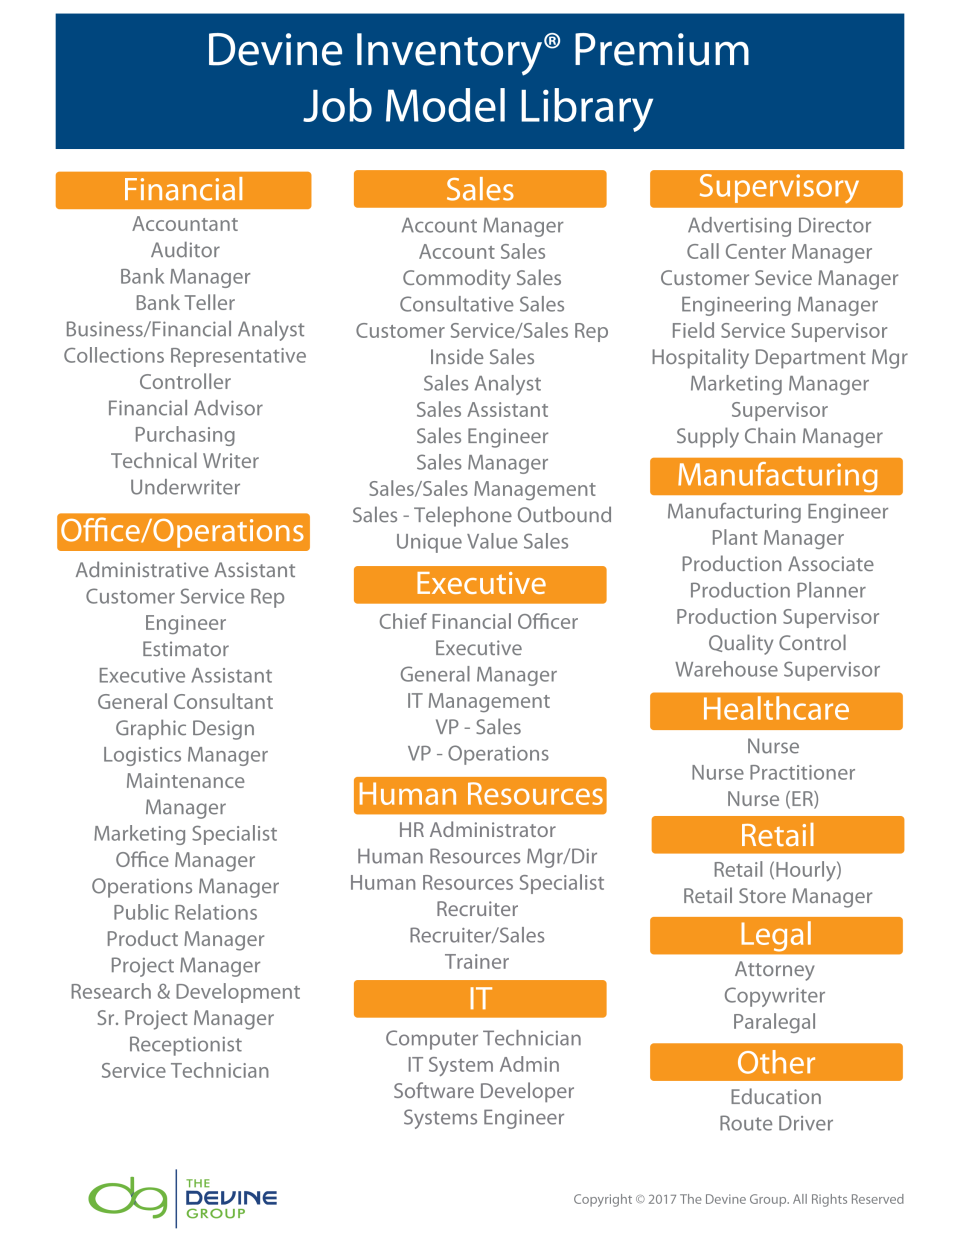 Choose from a selection of common job models when creating job profiles for openings